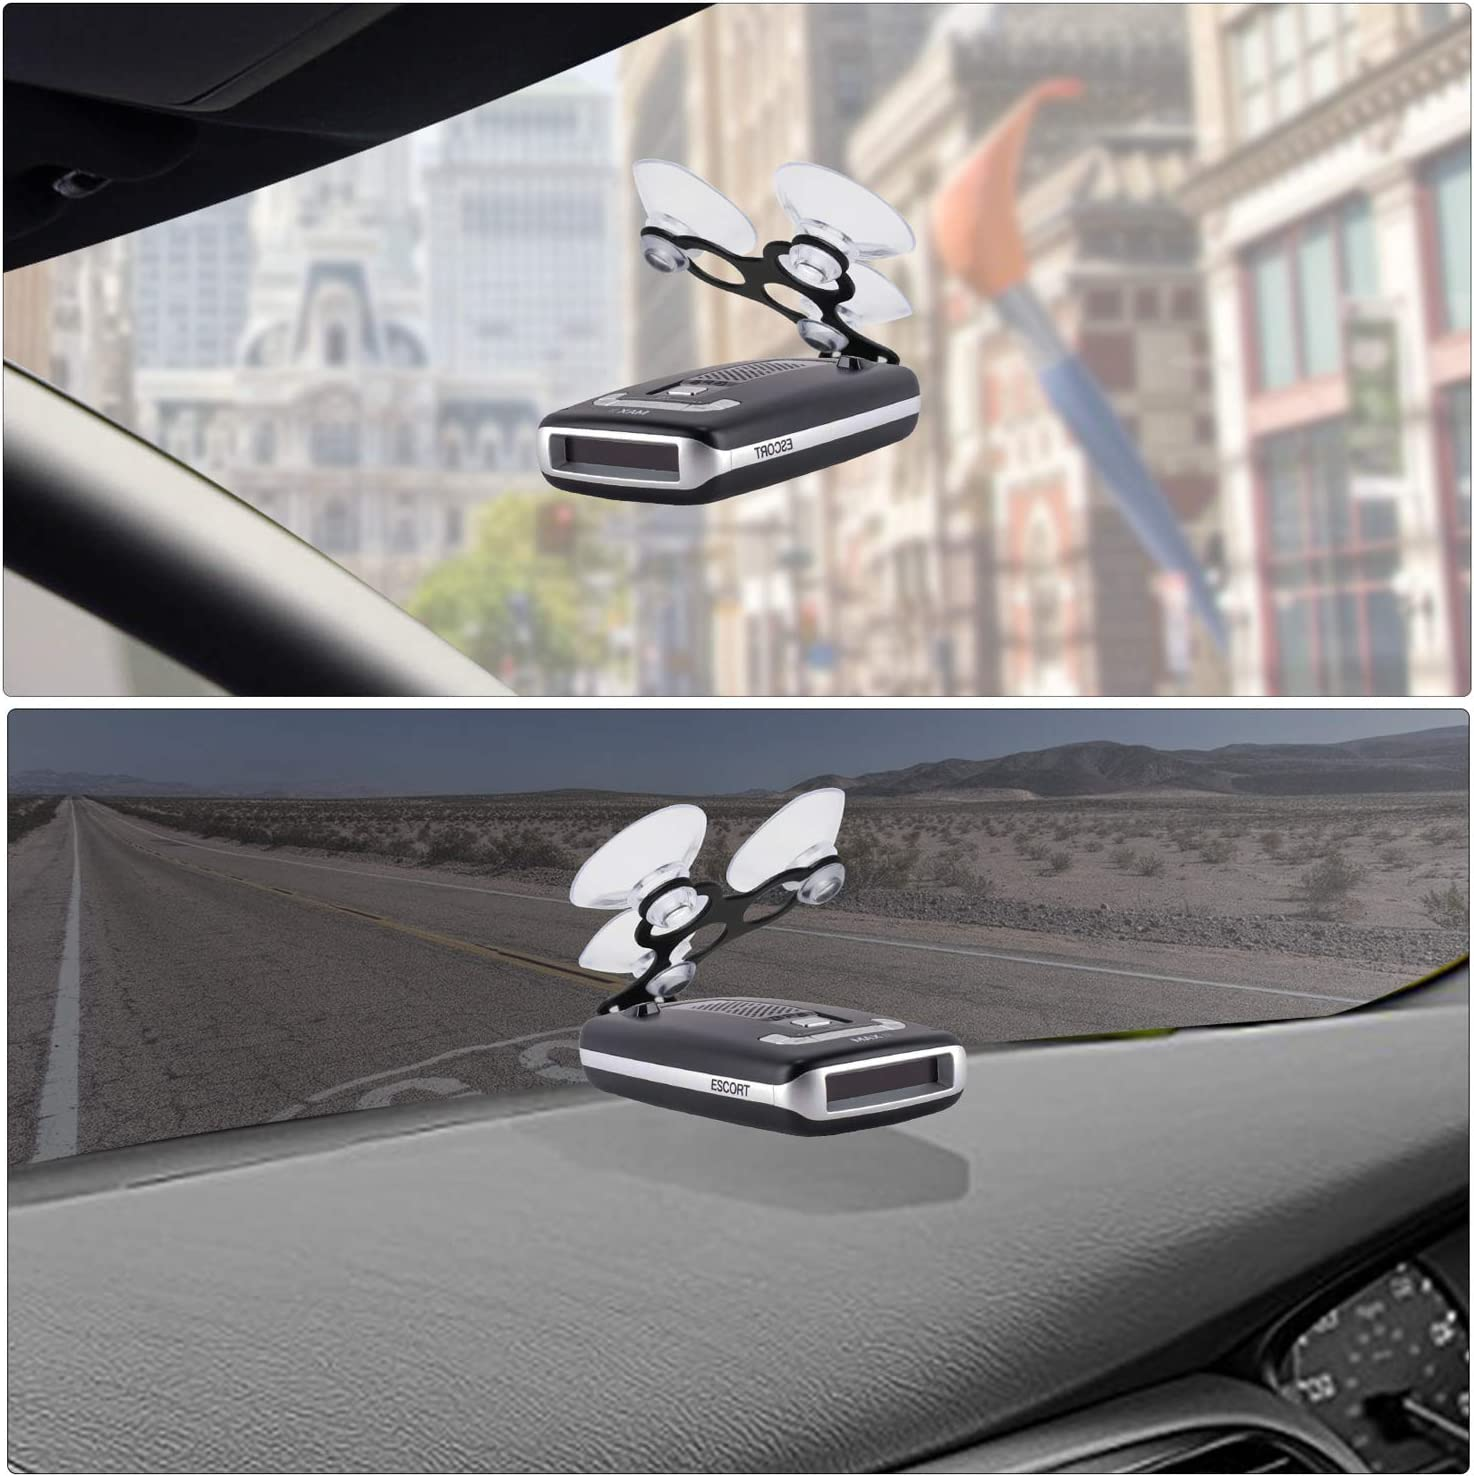 MvToe Radar Detector Suction Cup Mount Holder Compatible with Escort MAX Not for MAX360C Cradle Radar MAX360 Max 2